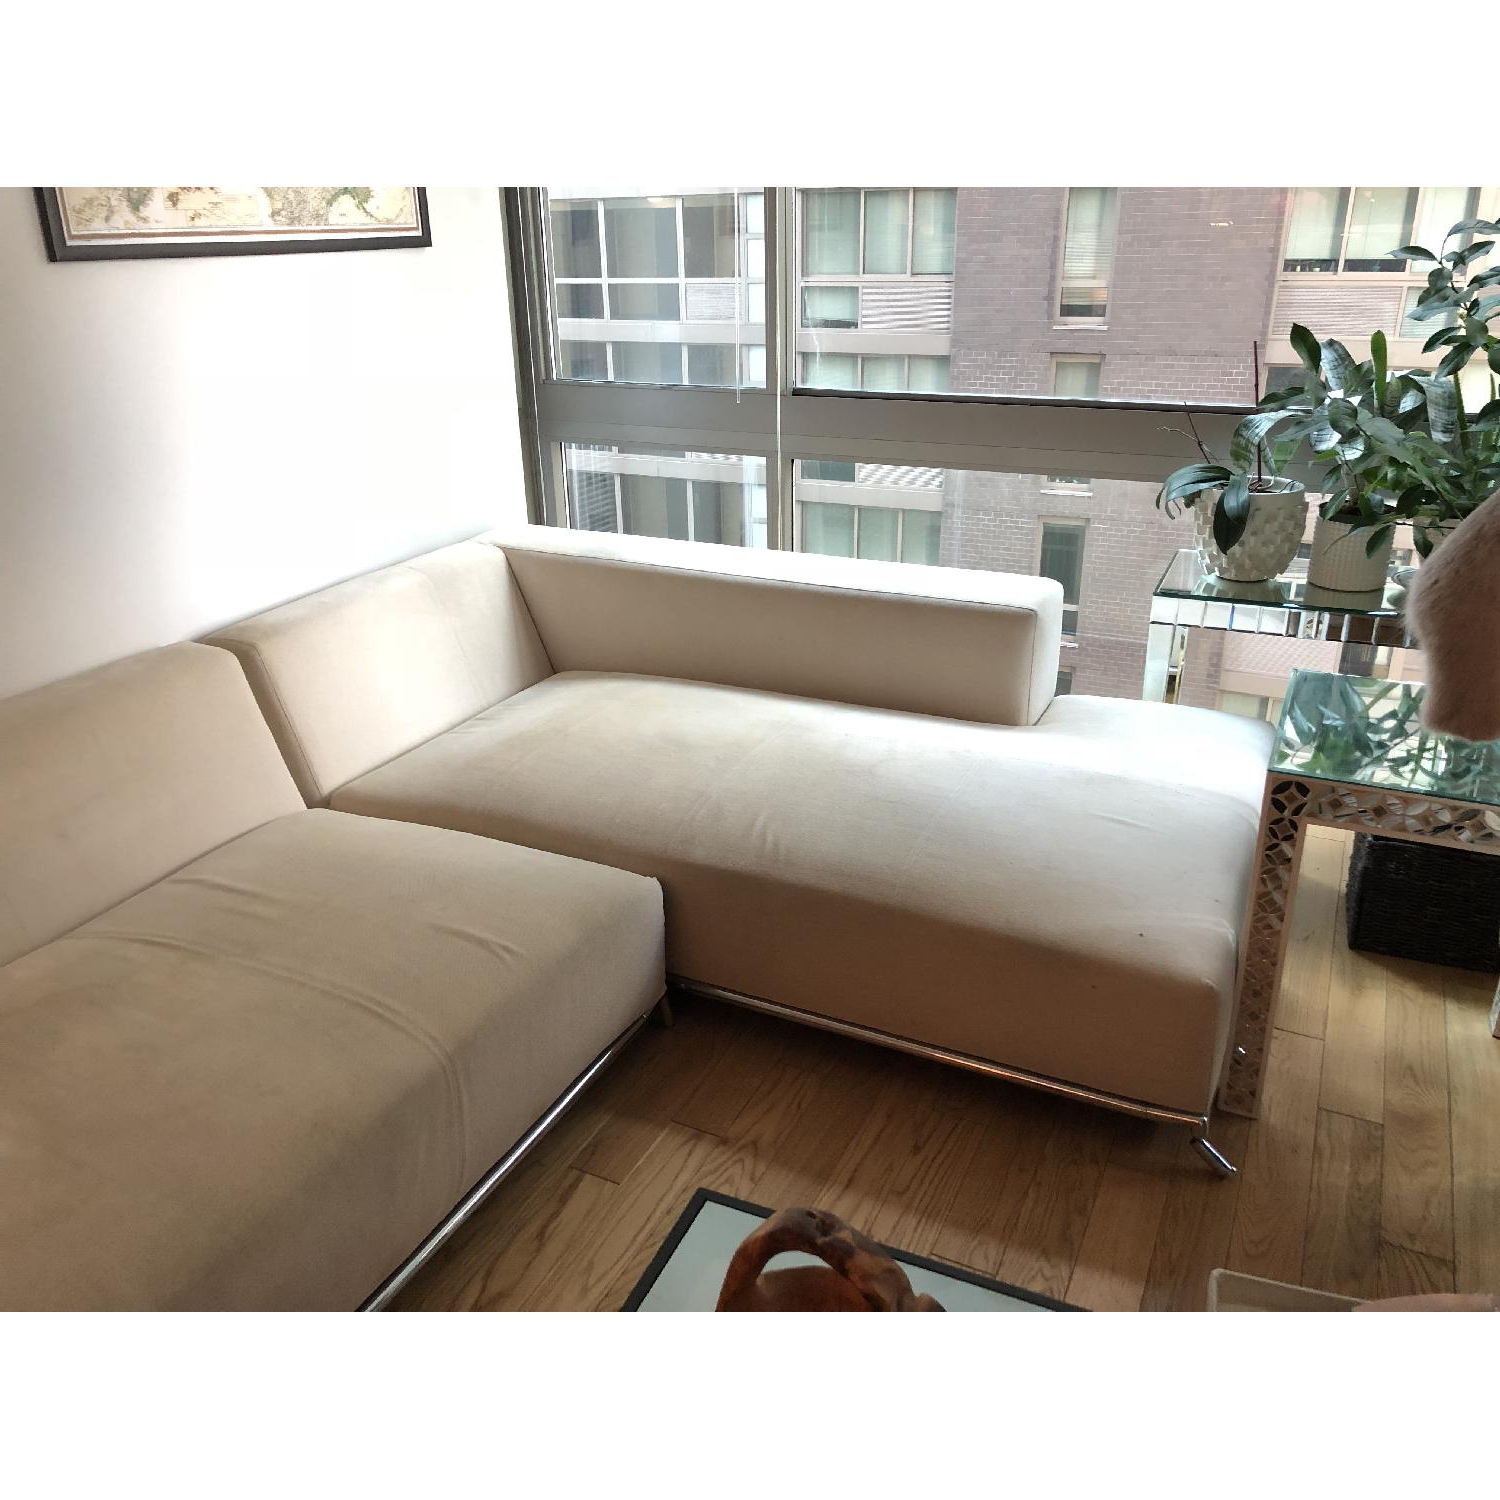 Newest Tenny Dark Grey 2 Piece Right Facing Chaise Sectionals With 2 Headrest Inside 2 Piece Chaise Sectional Sofa (View 12 of 20)